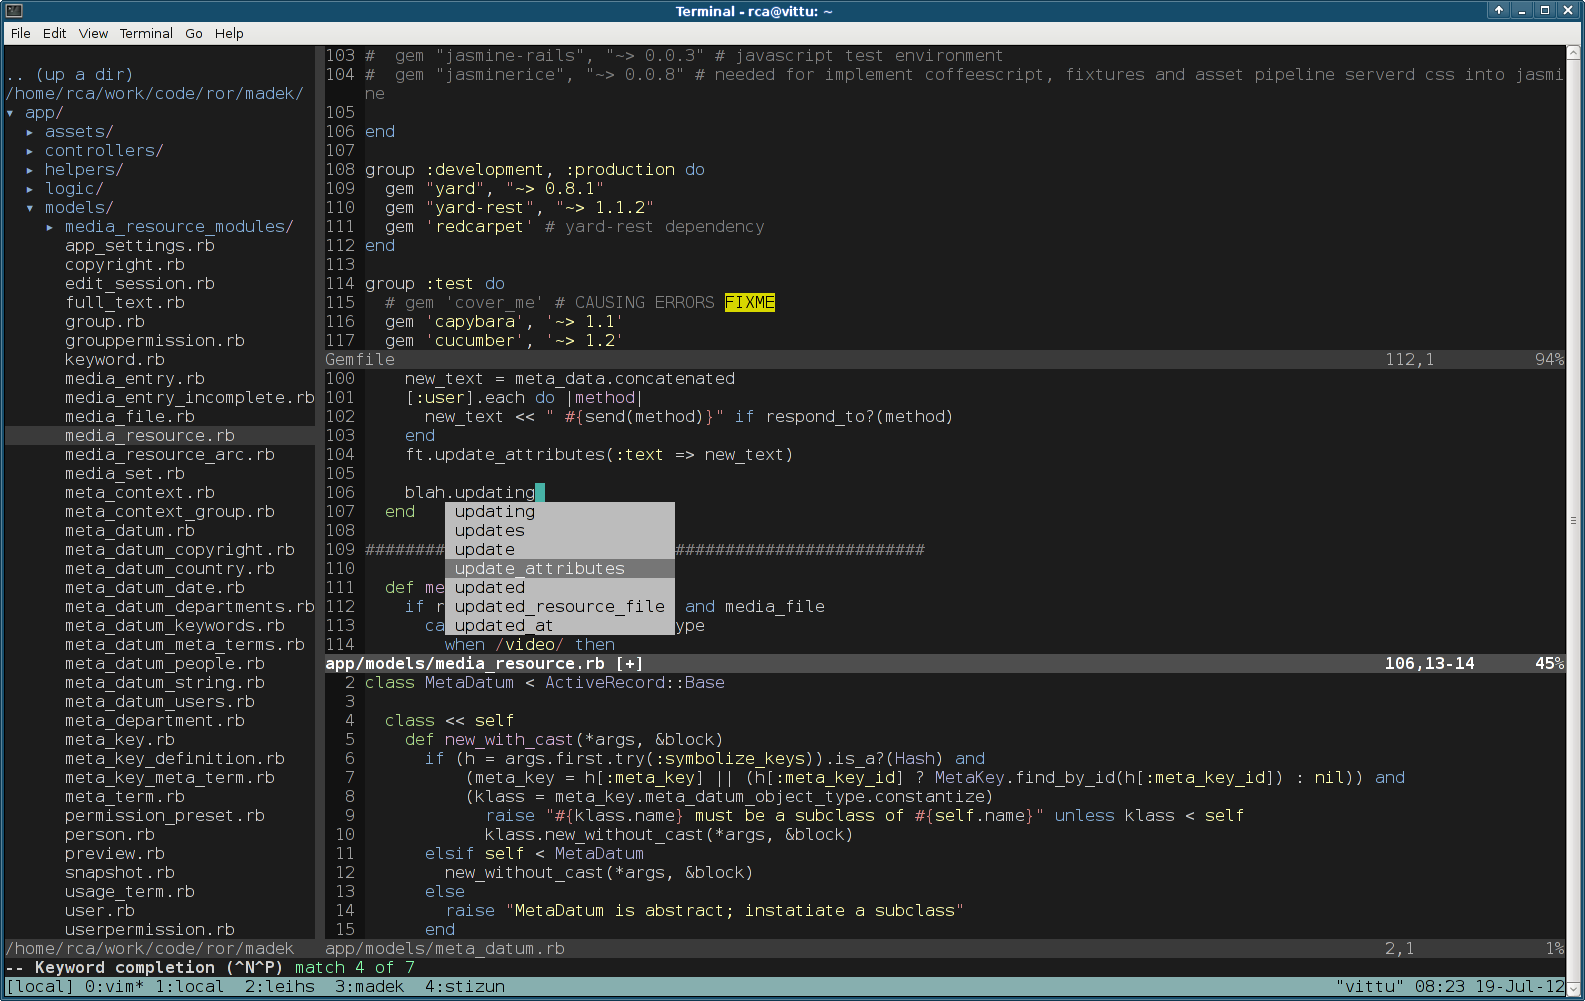 Stephen Cheng: Building your own Sublime out of free components with vim